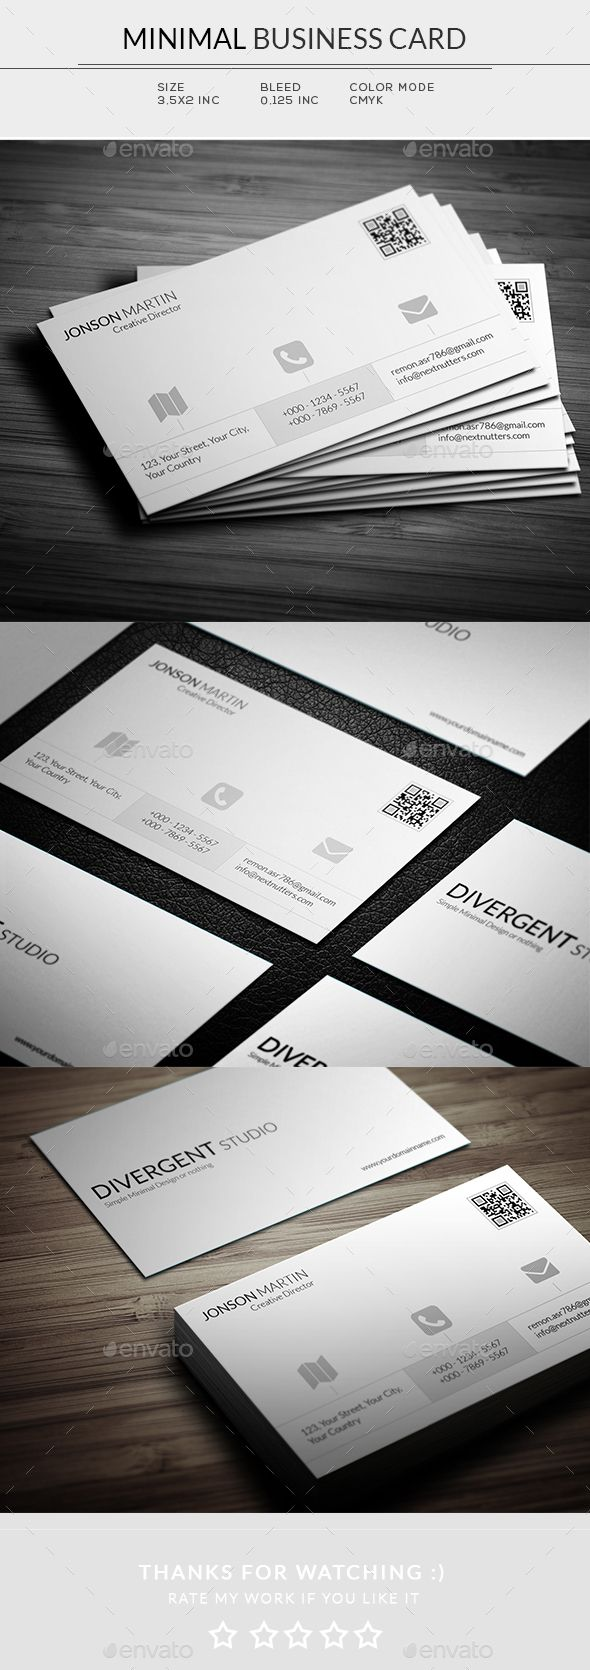 Best 25 business card software ideas on pinterest business card minimal business card magicingreecefo Image collections